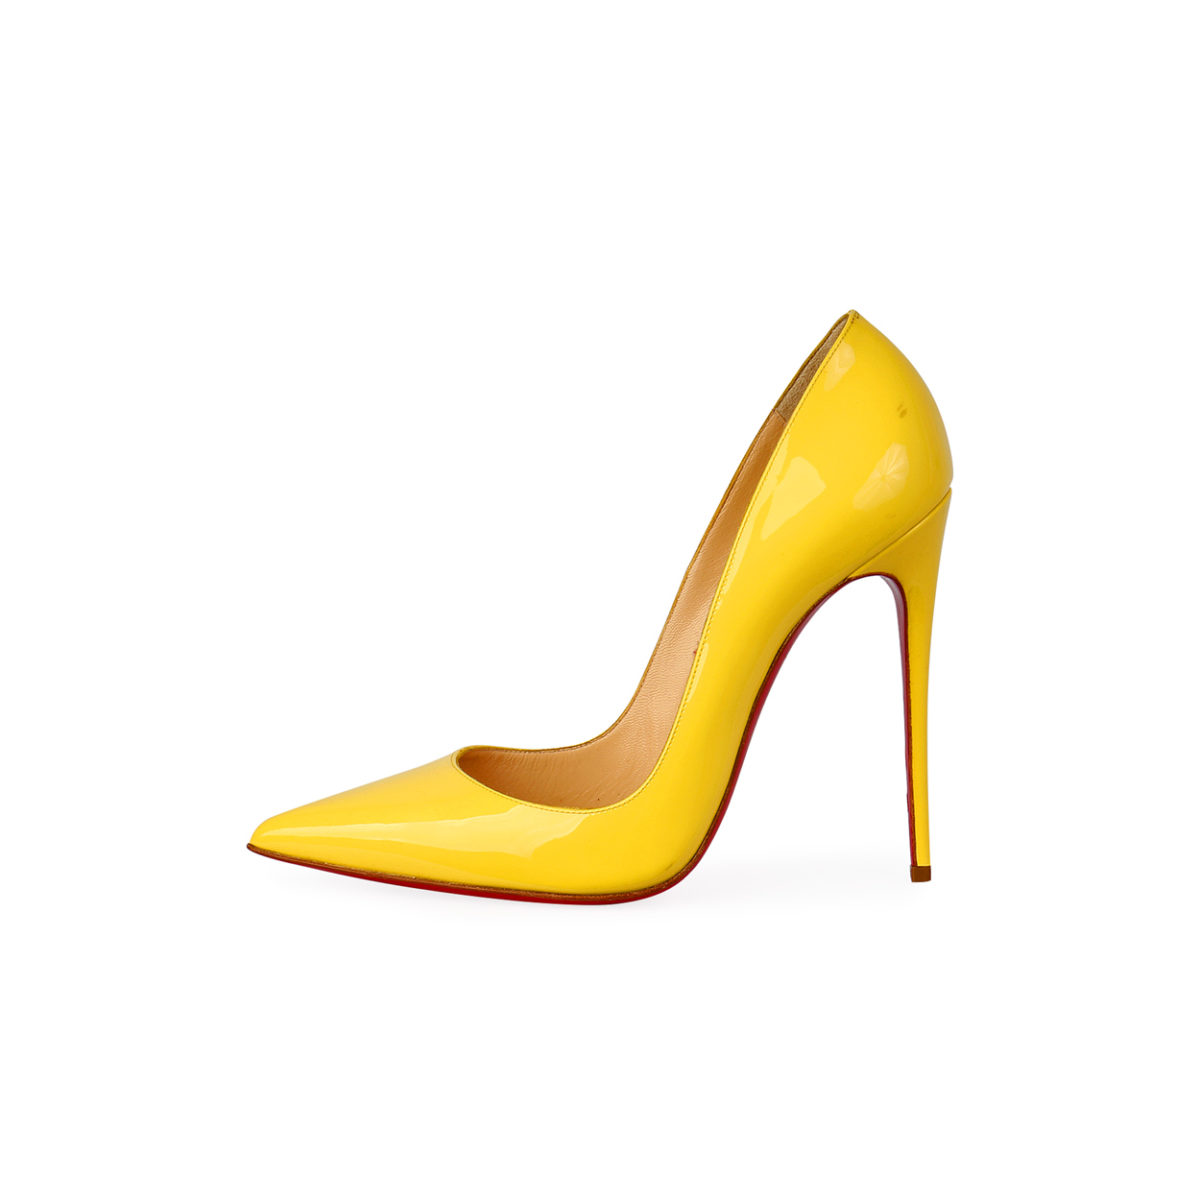 2a72f328205 CHRISTIAN LOUBOUTIN Patent So Kate 120mm Pumps Light Yellow – S: 38.5 (5.5)